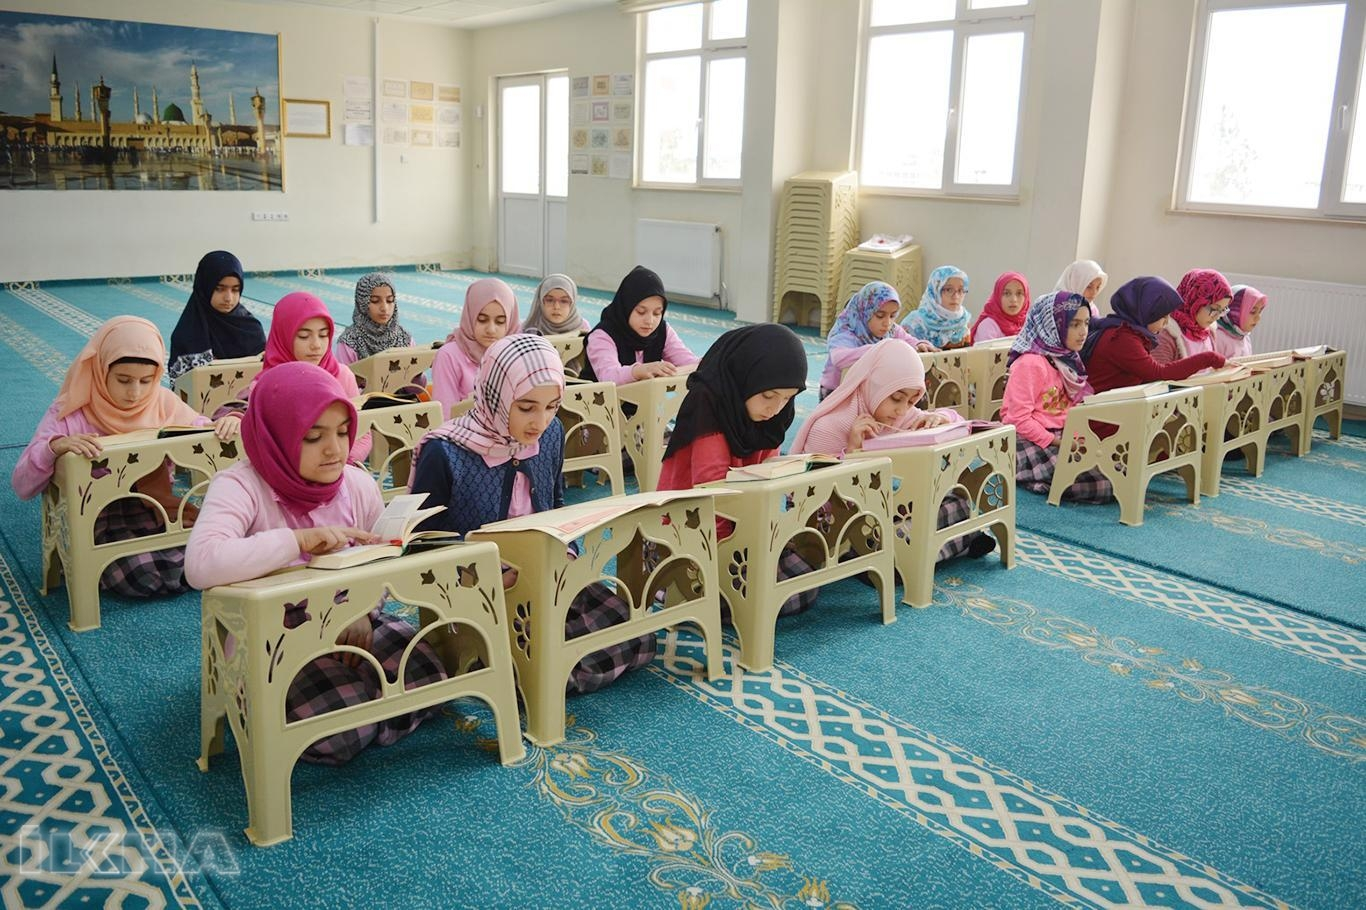 Imam Hatip students to memorize Qur'an and learn 4 languages